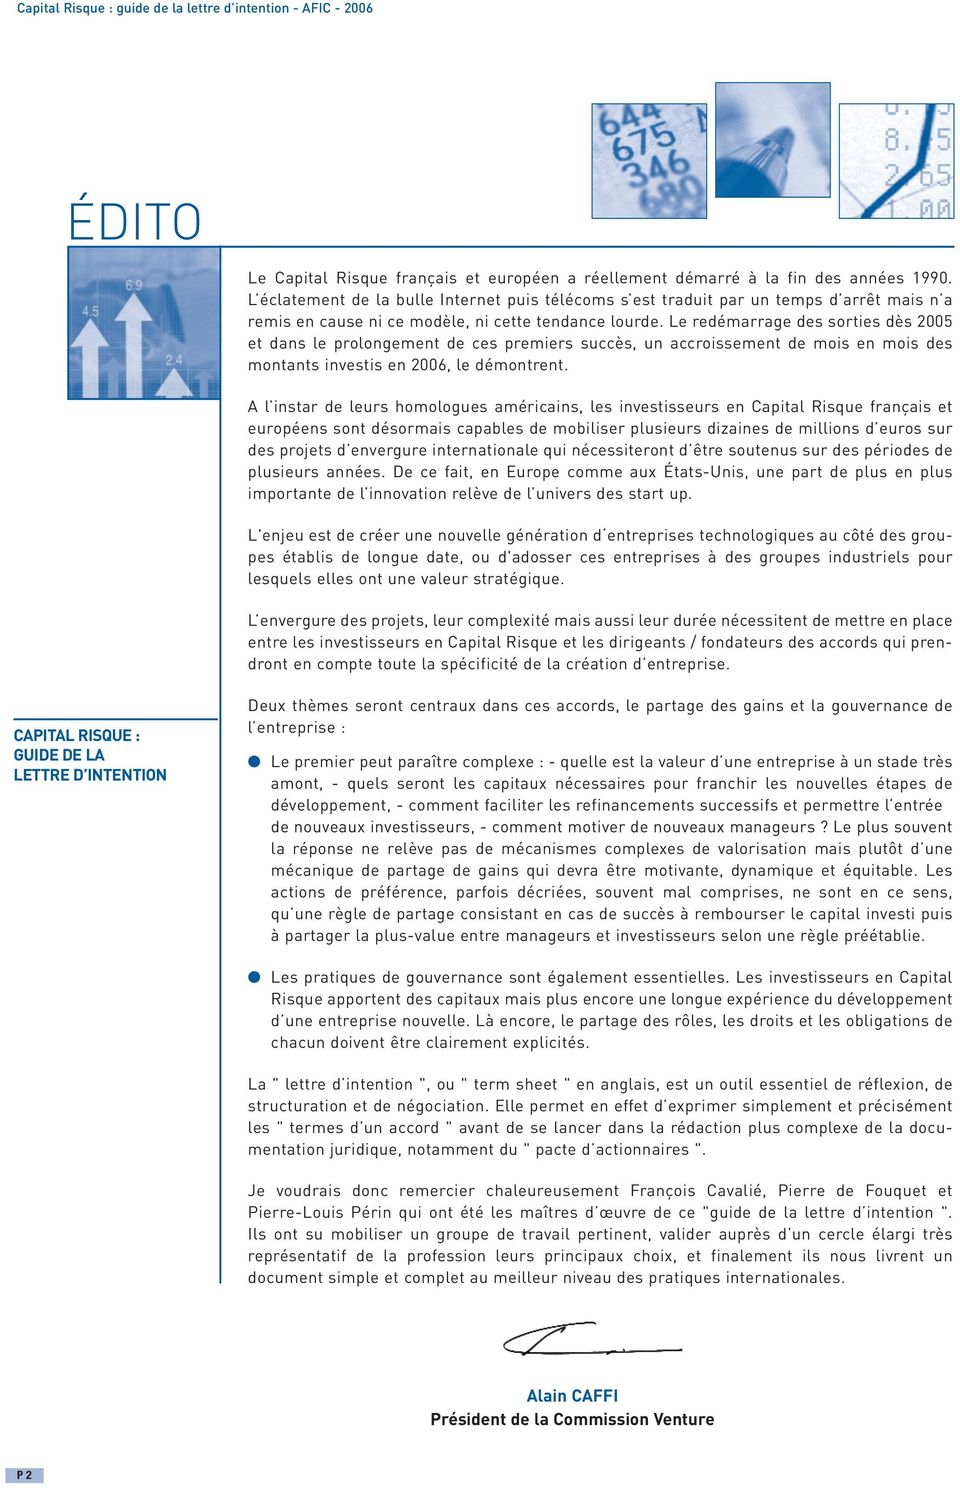 Capital Risque Guide De La Lettre D Intention Pdf